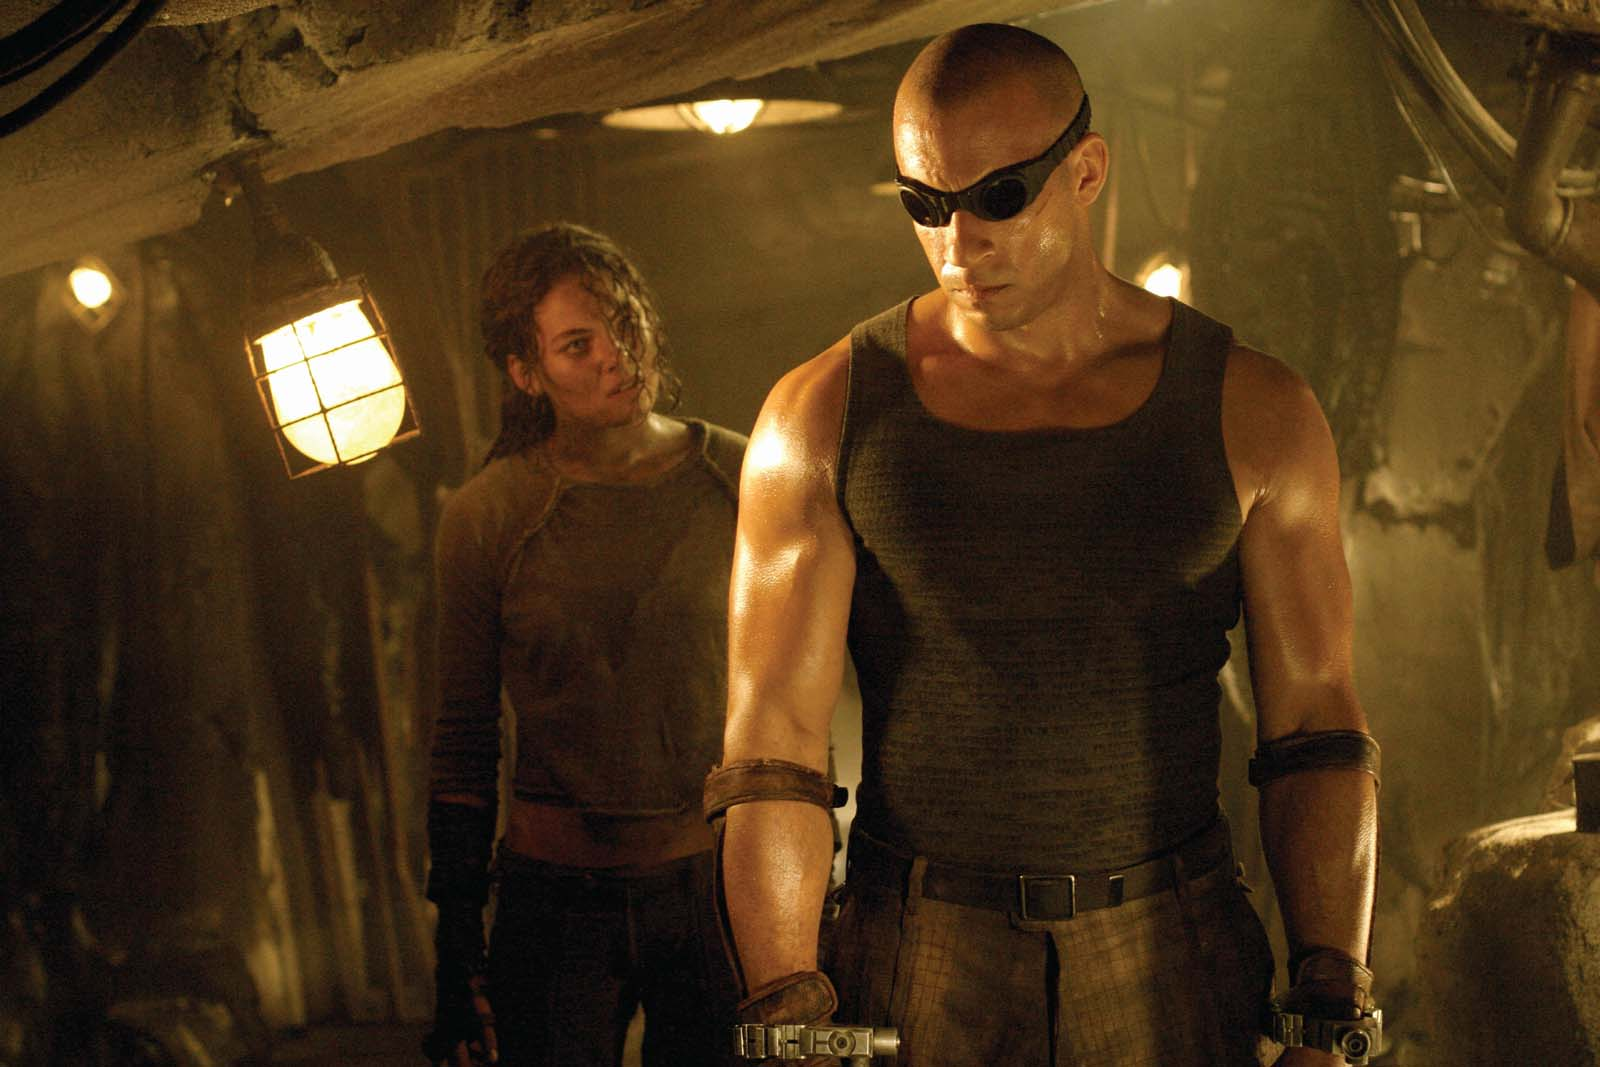 Vin Diesel as Riddick with Alexa Davalos as Kyra/Jack in The Chronicles of Riddick (2004)